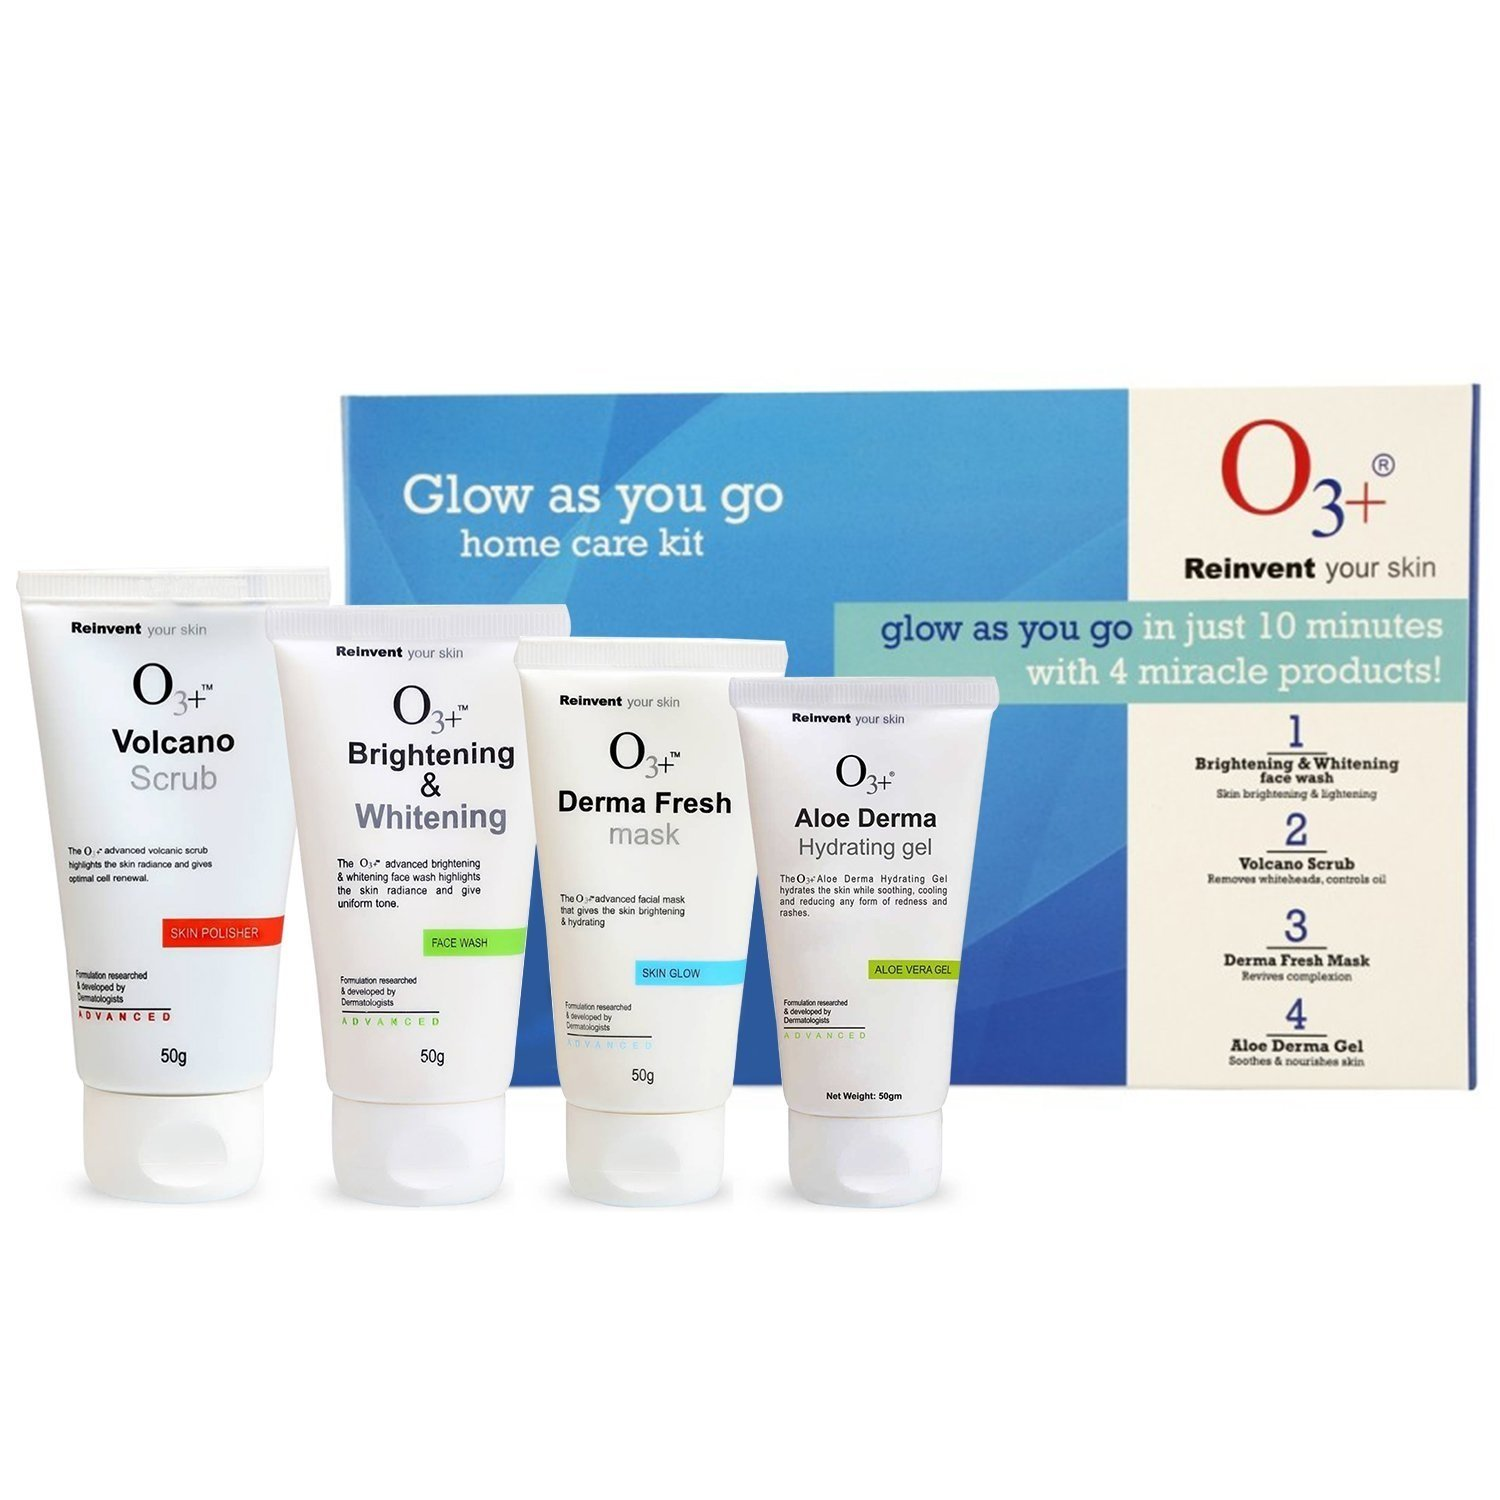 O3+ Glow As You Go Kit for Normal to Oily Skin (4 x 50g) product image